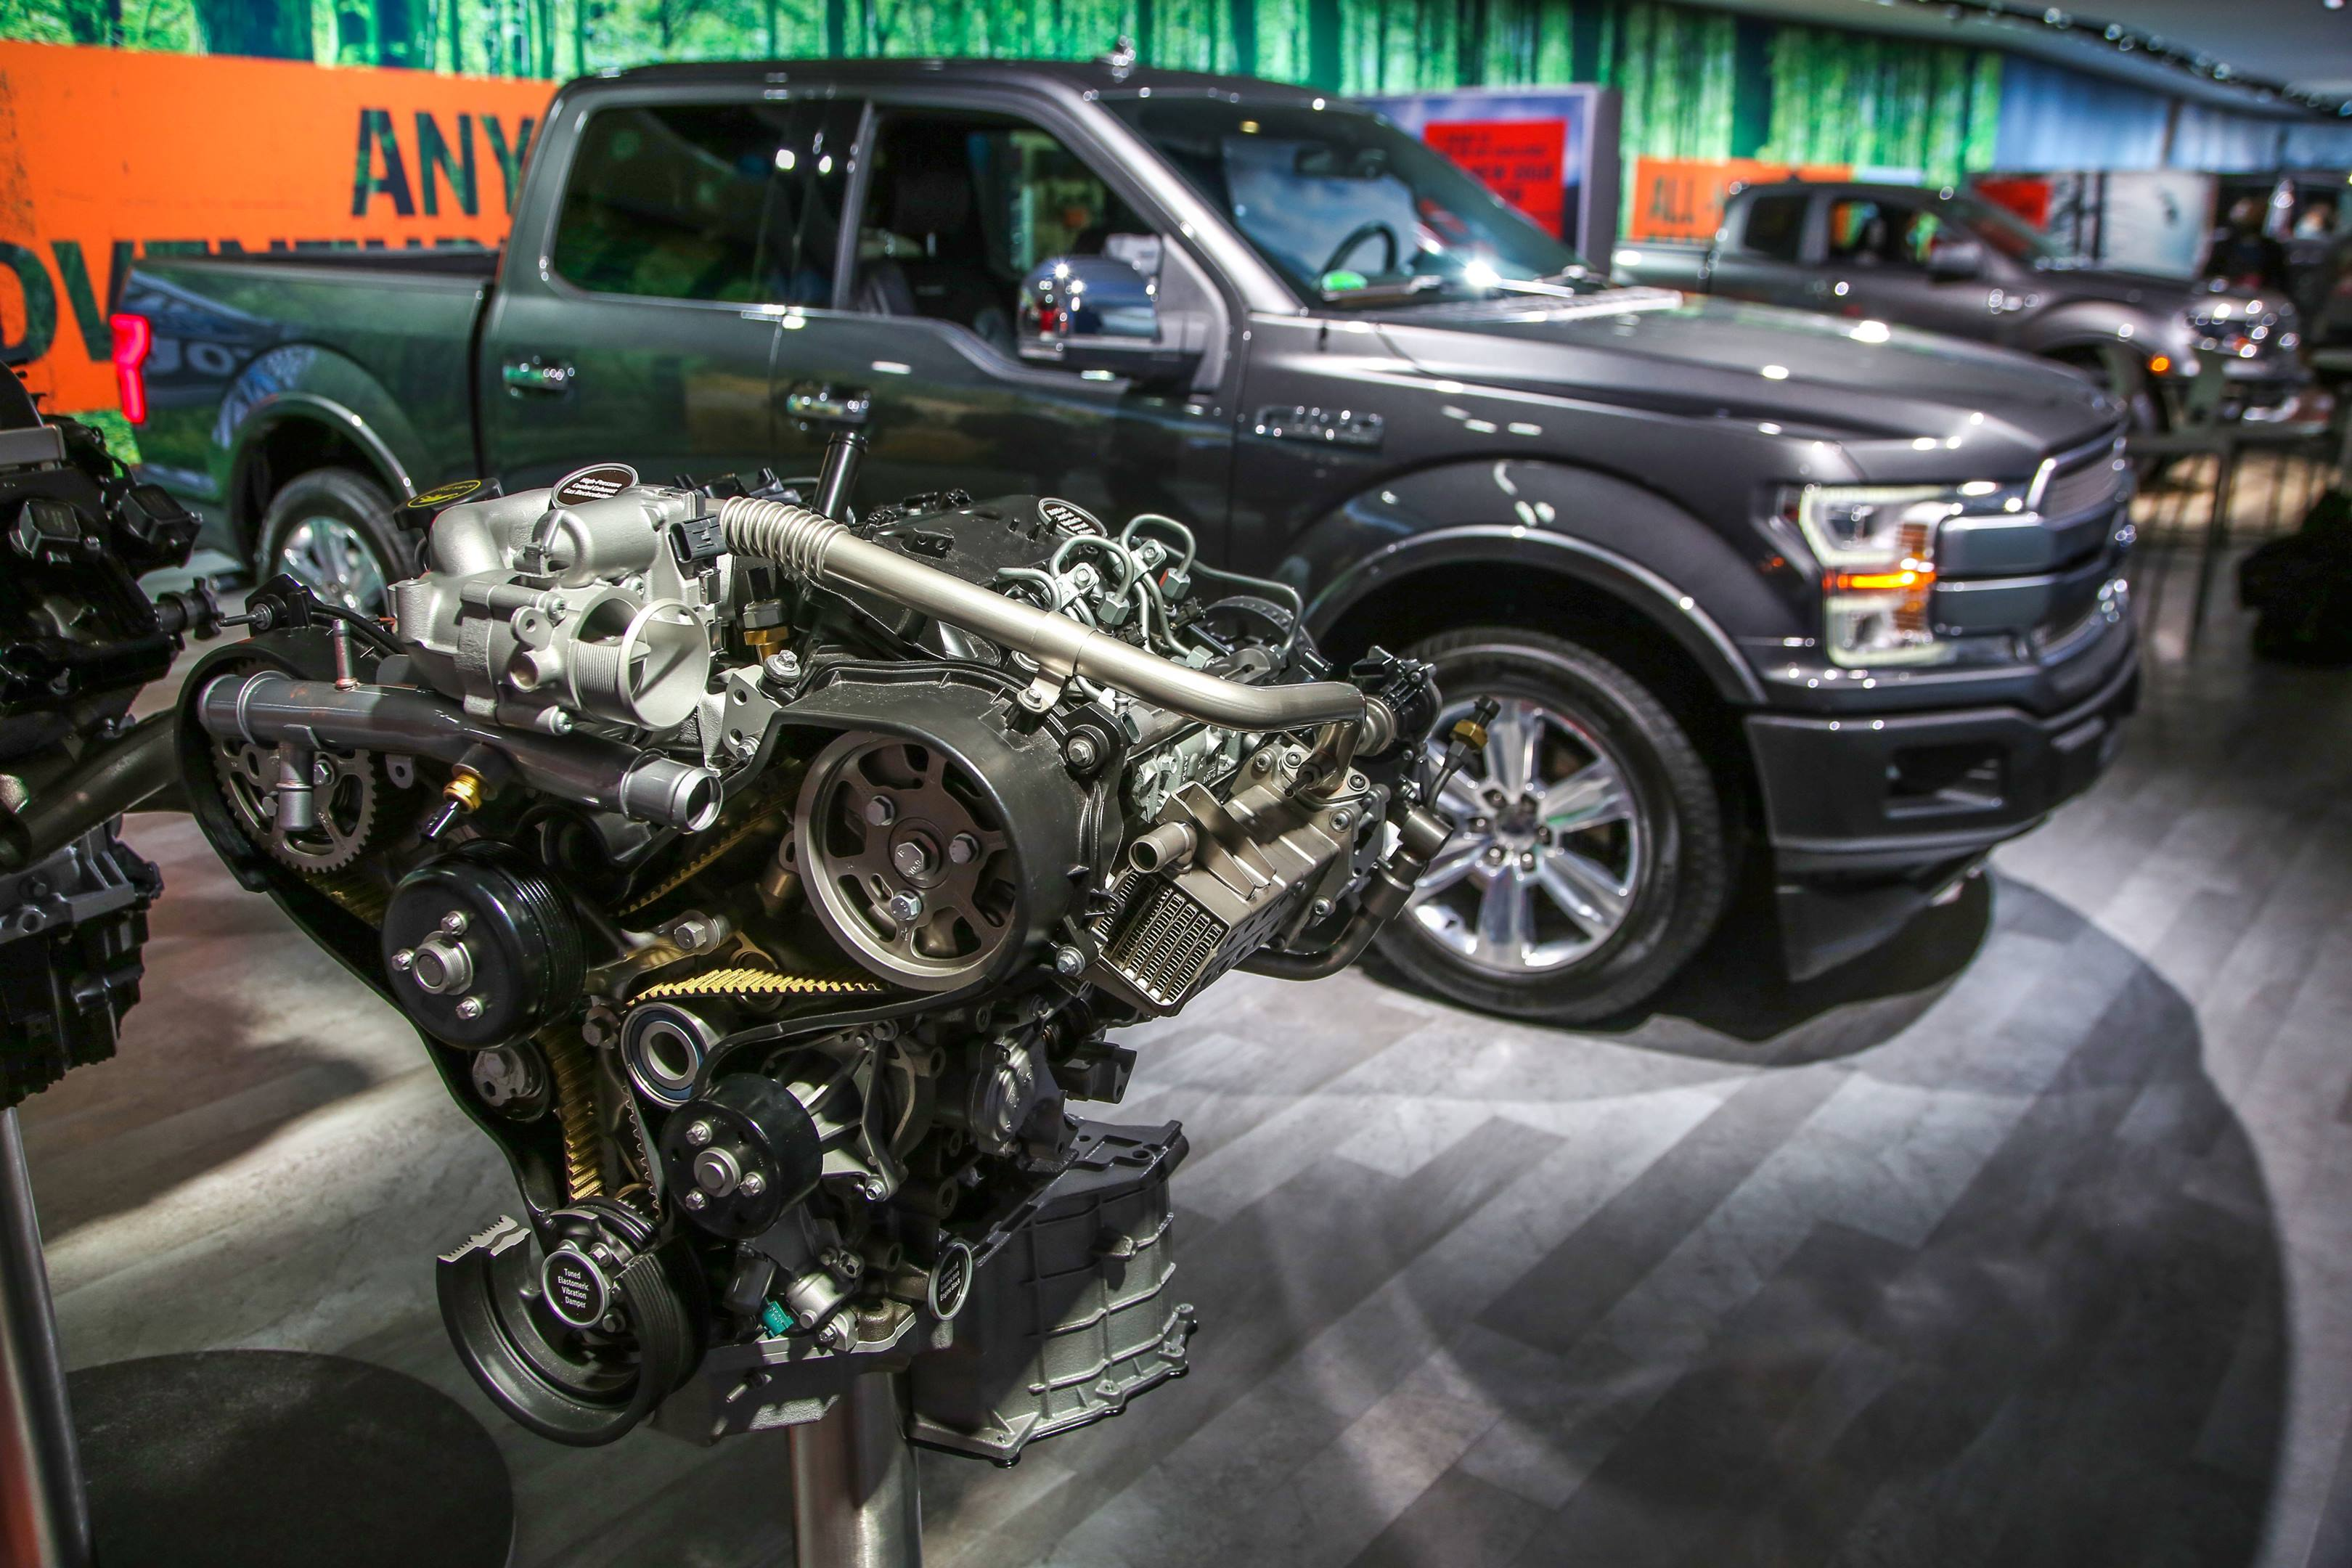 2018 Ford F-150 Diesel at the NAIAS